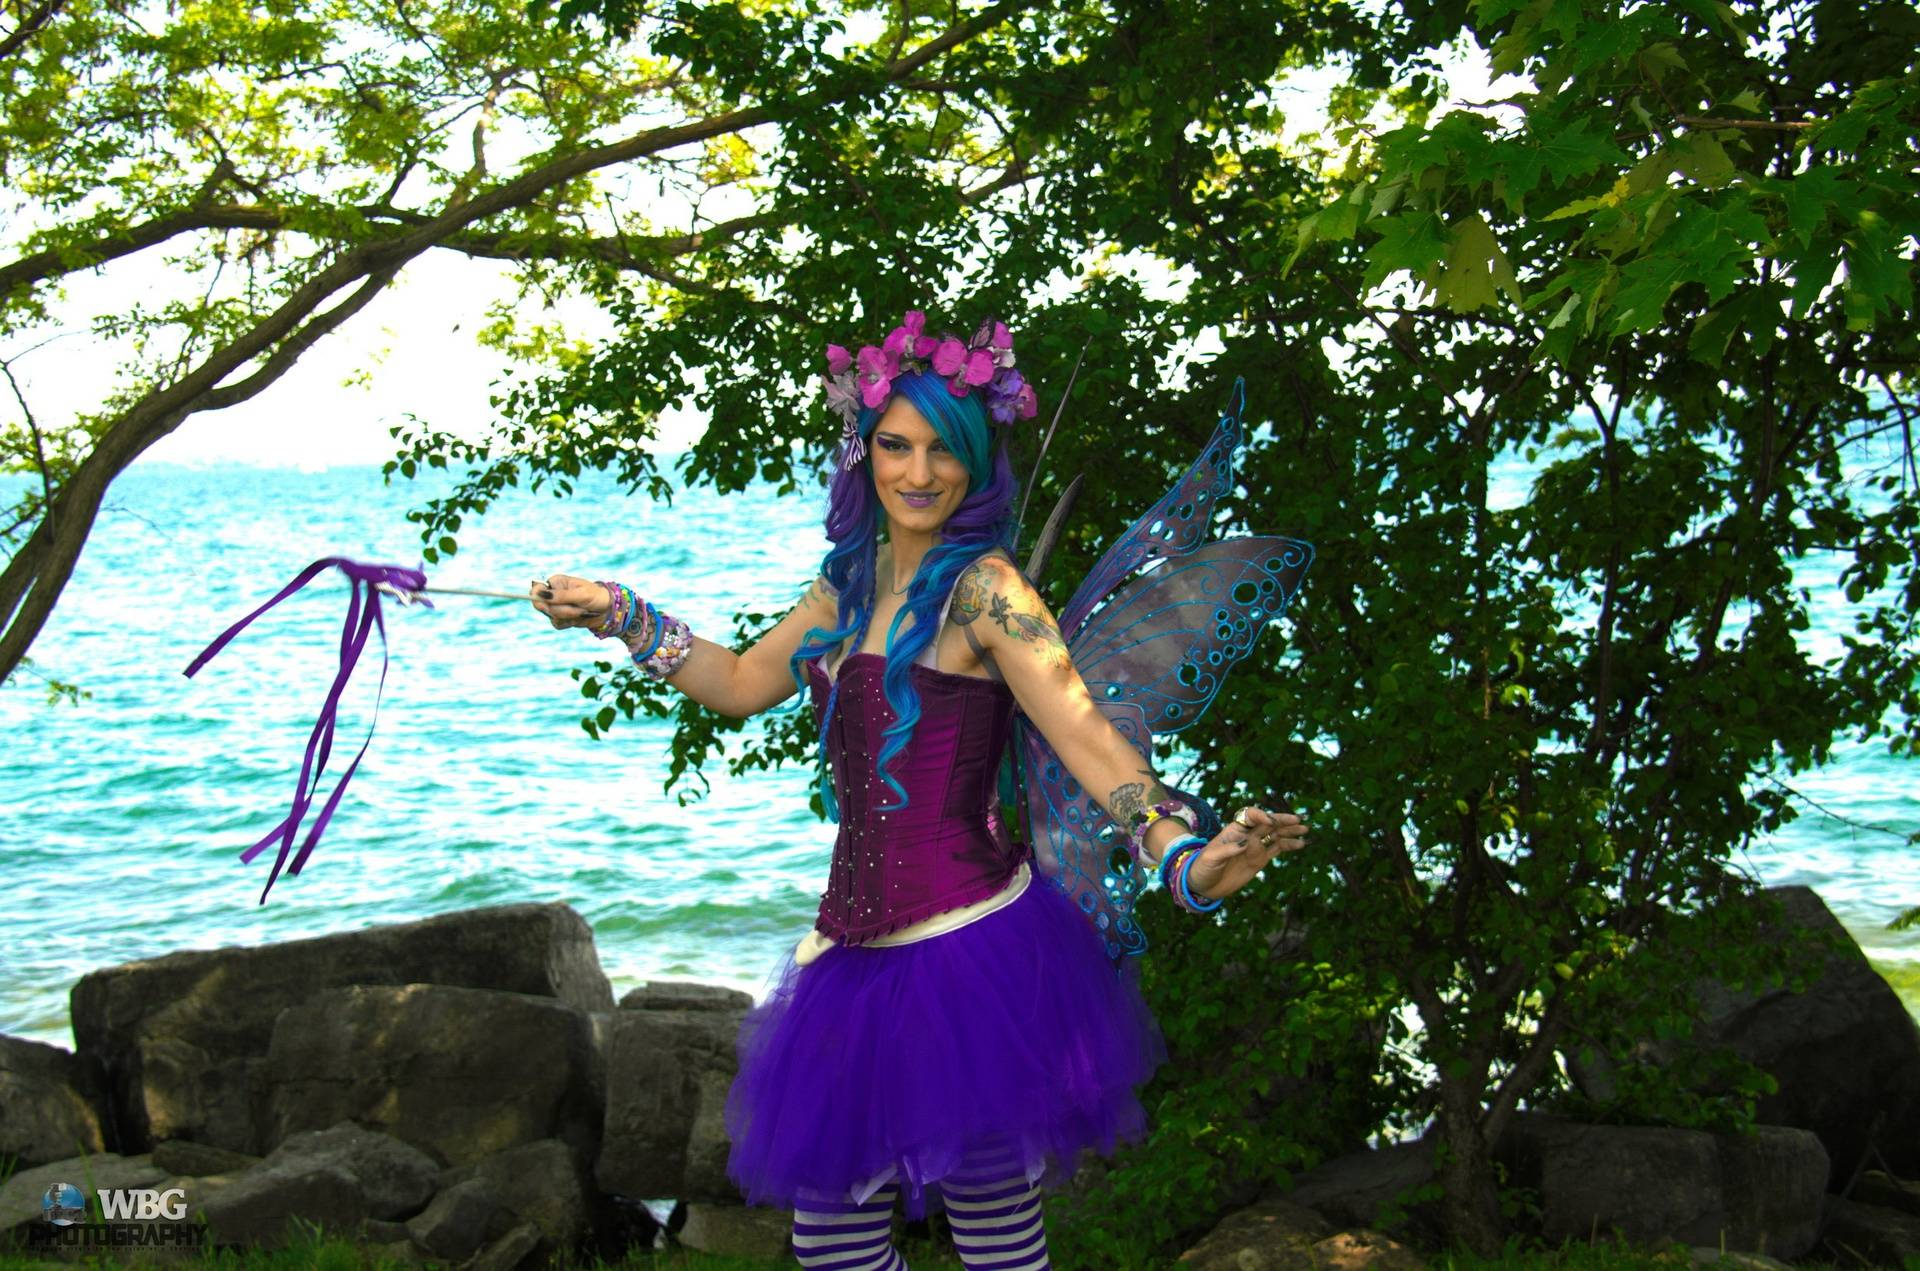 Lily the Fairy